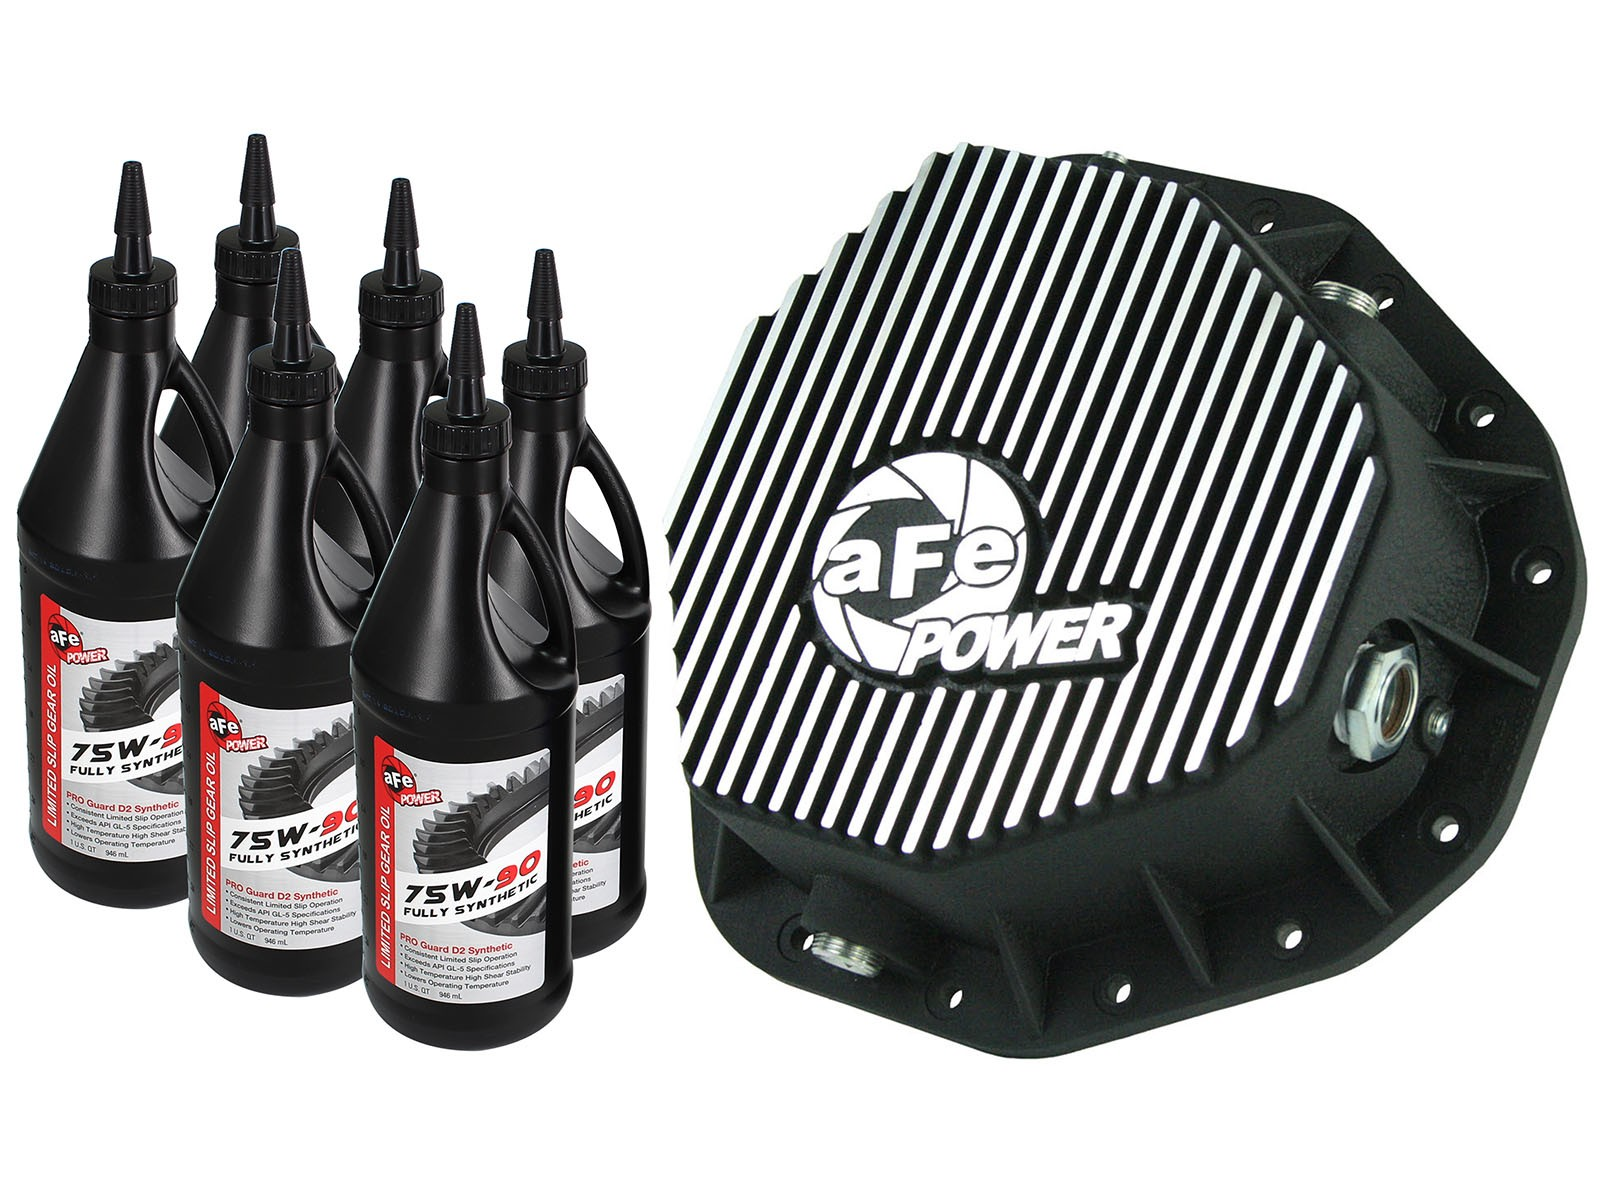 aFe POWER 46-70092-WL Rear Differential Cover, Machined Fins; Pro Series w/ Gear Oil